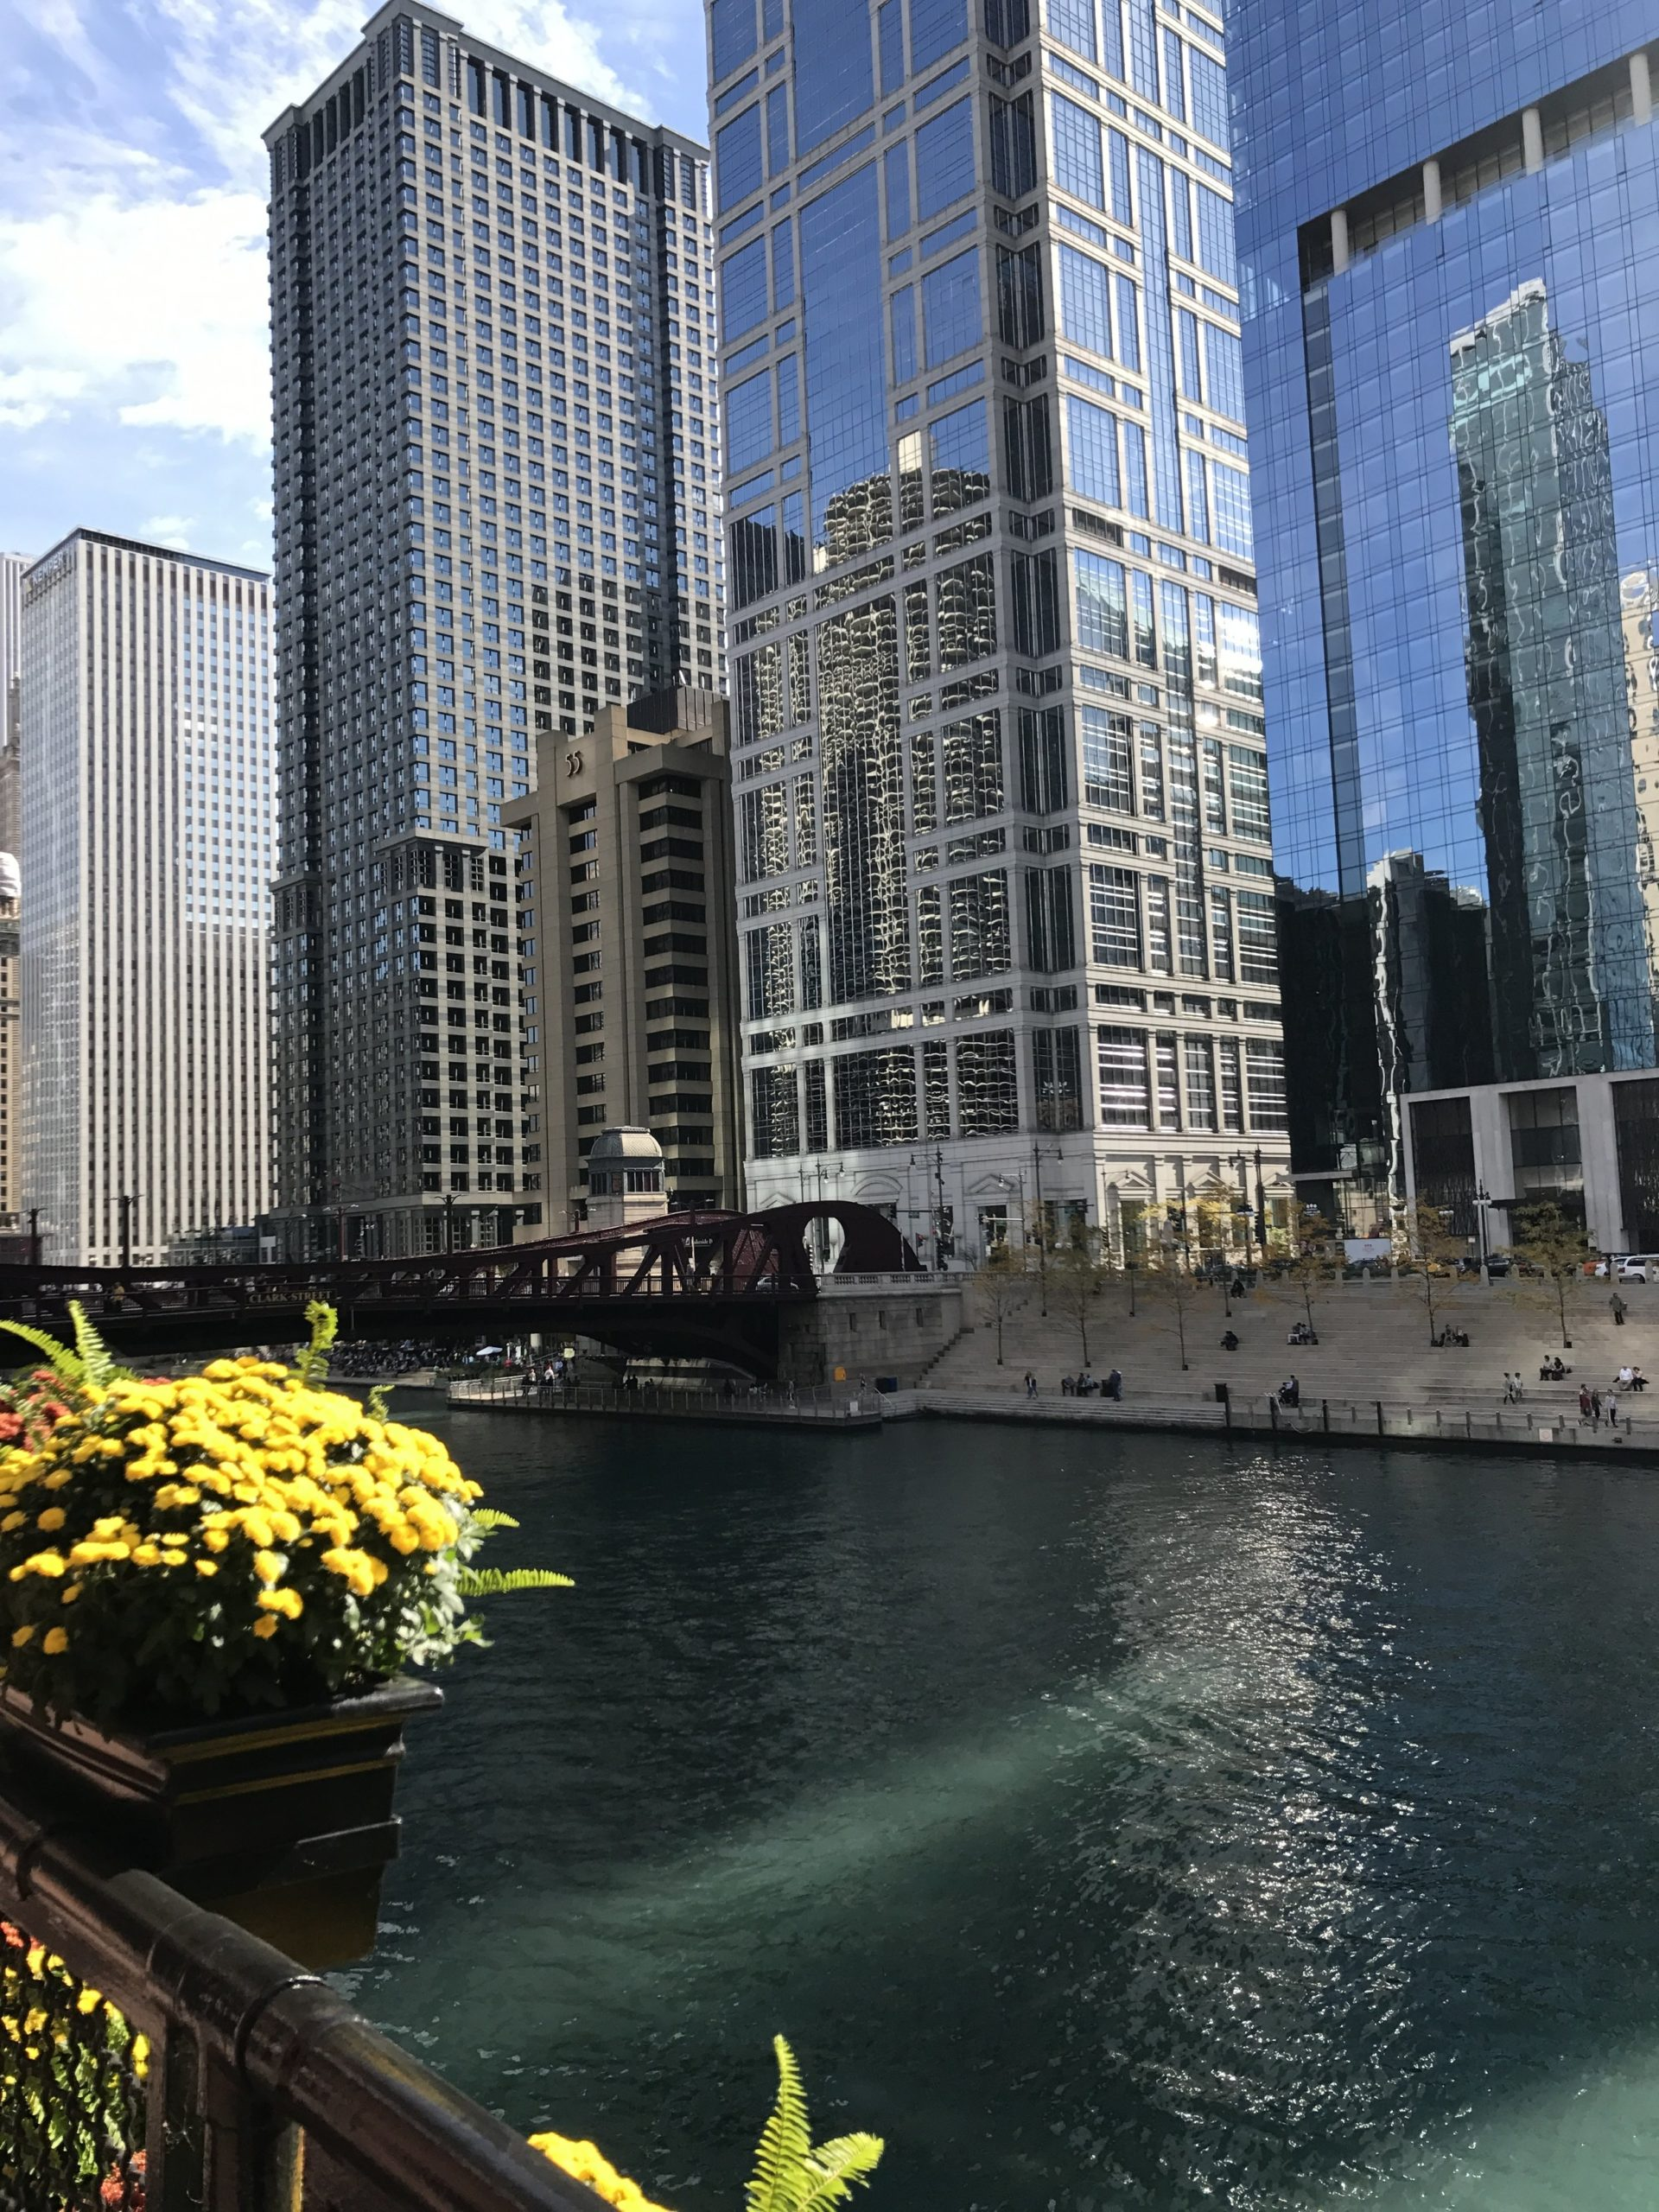 downtown chicago with the river